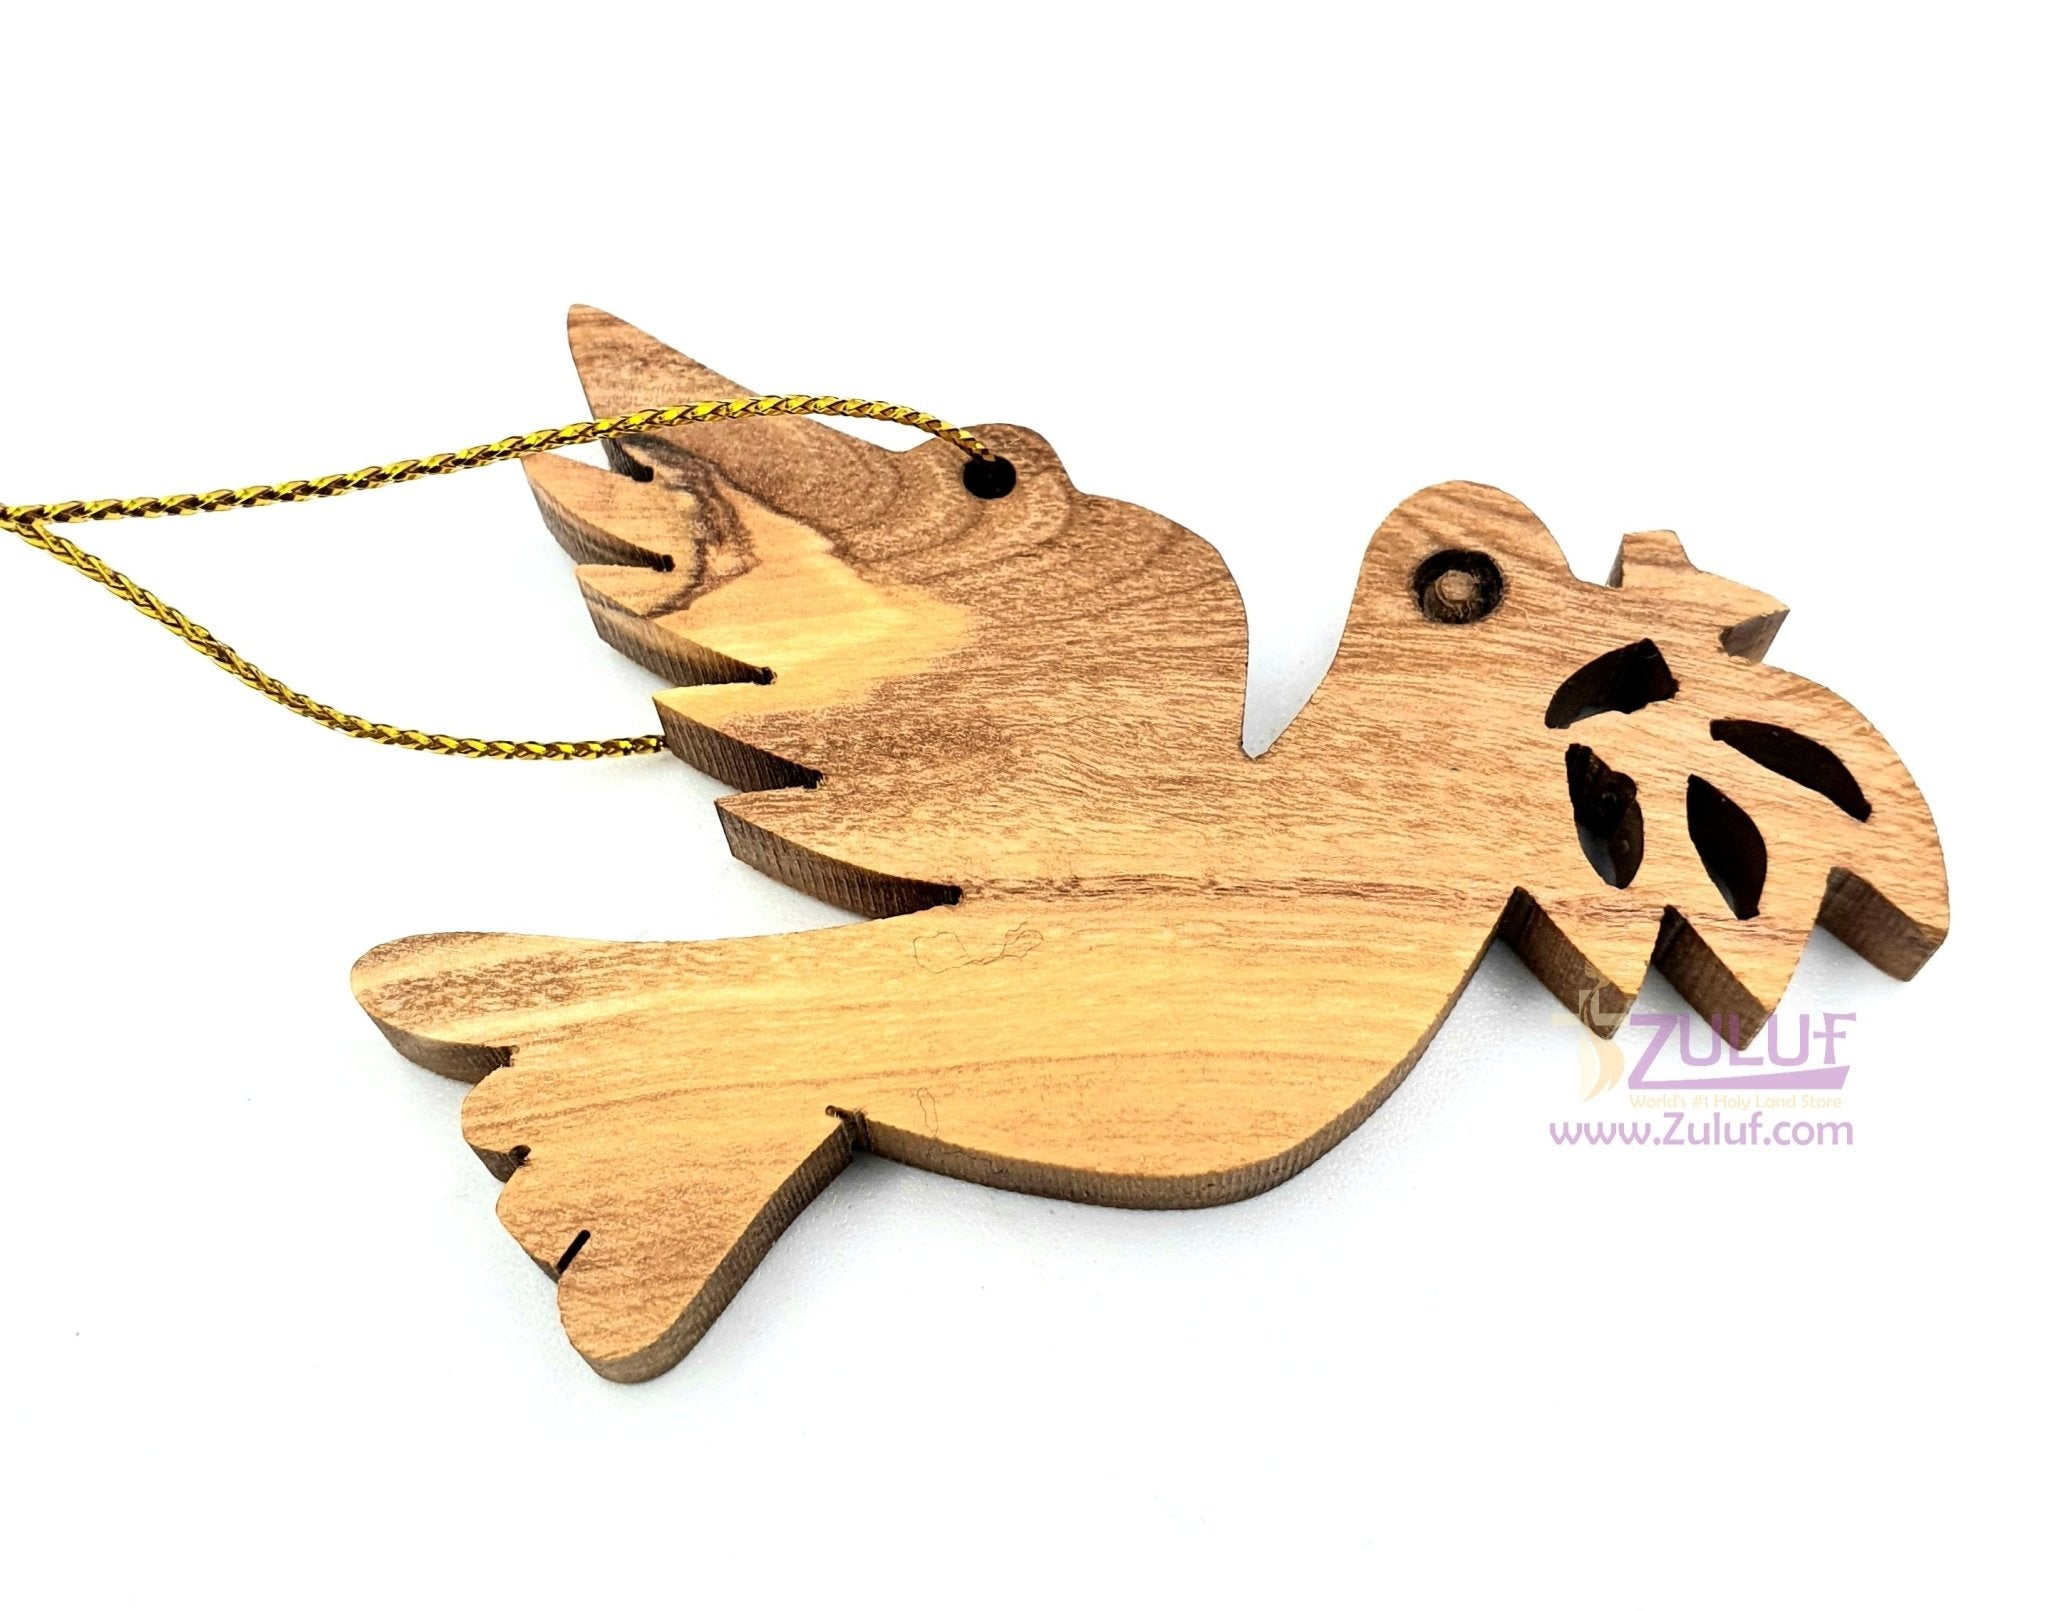 Olive Wood Peace Dove with Olive Branch Christmas Ornament - Fair Trade & Handmade - Zuluf ORN027 - Zuluf